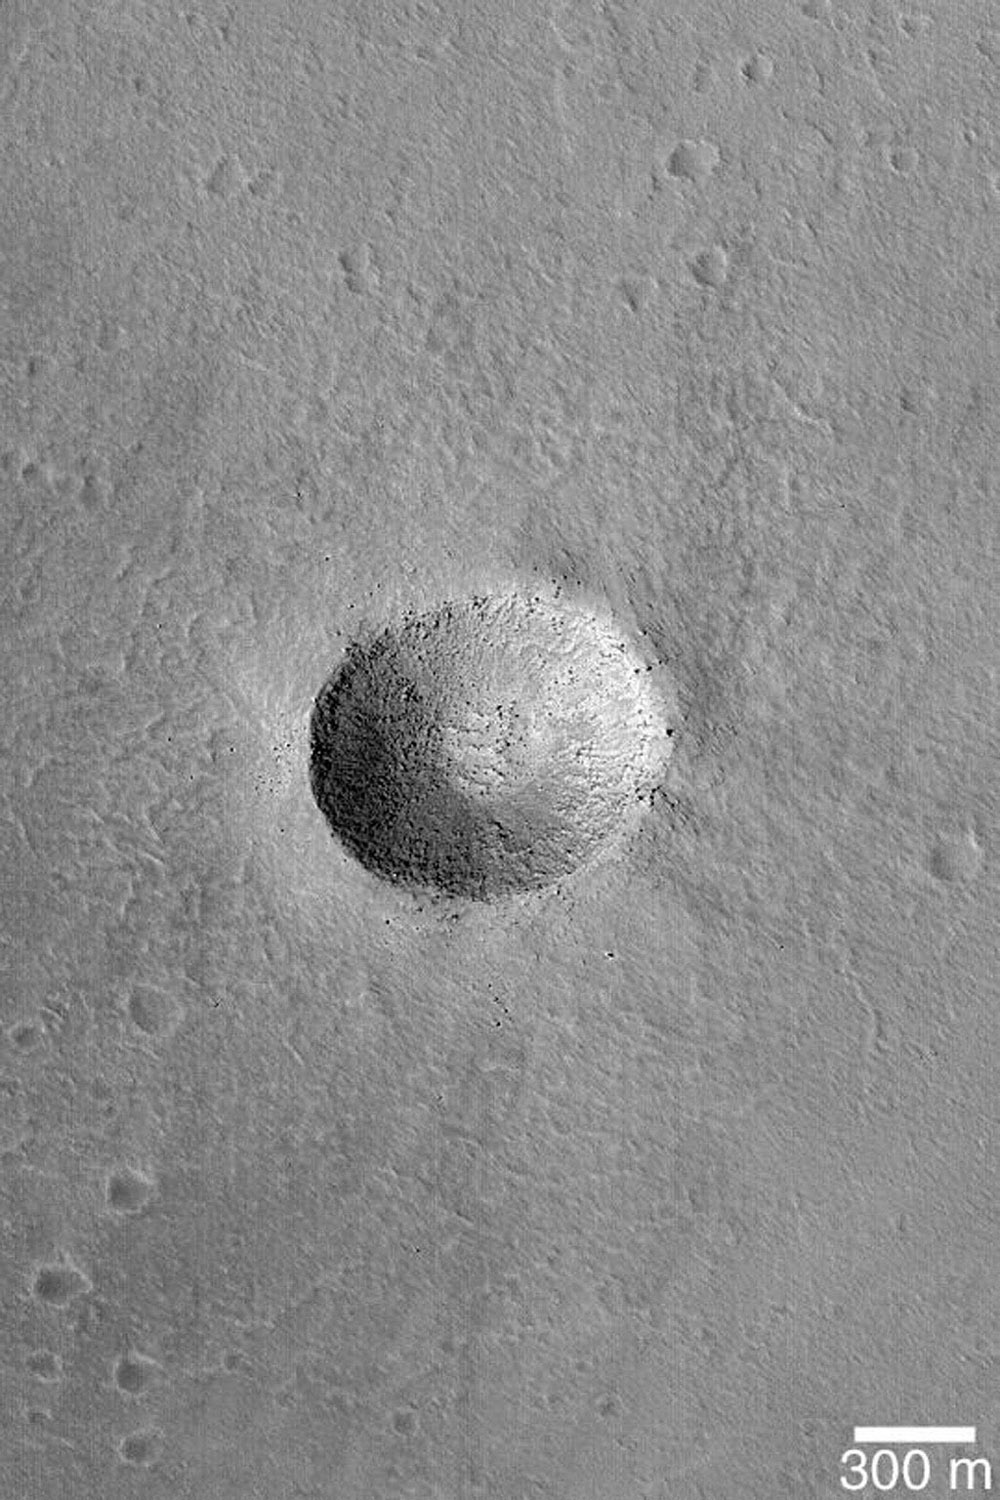 NASA's Mars Global Surveyor shows a crater on the floor of the caldera, a large volcanic/collapse crater, of a giant martian volcano, Arsia Mons on Mars.